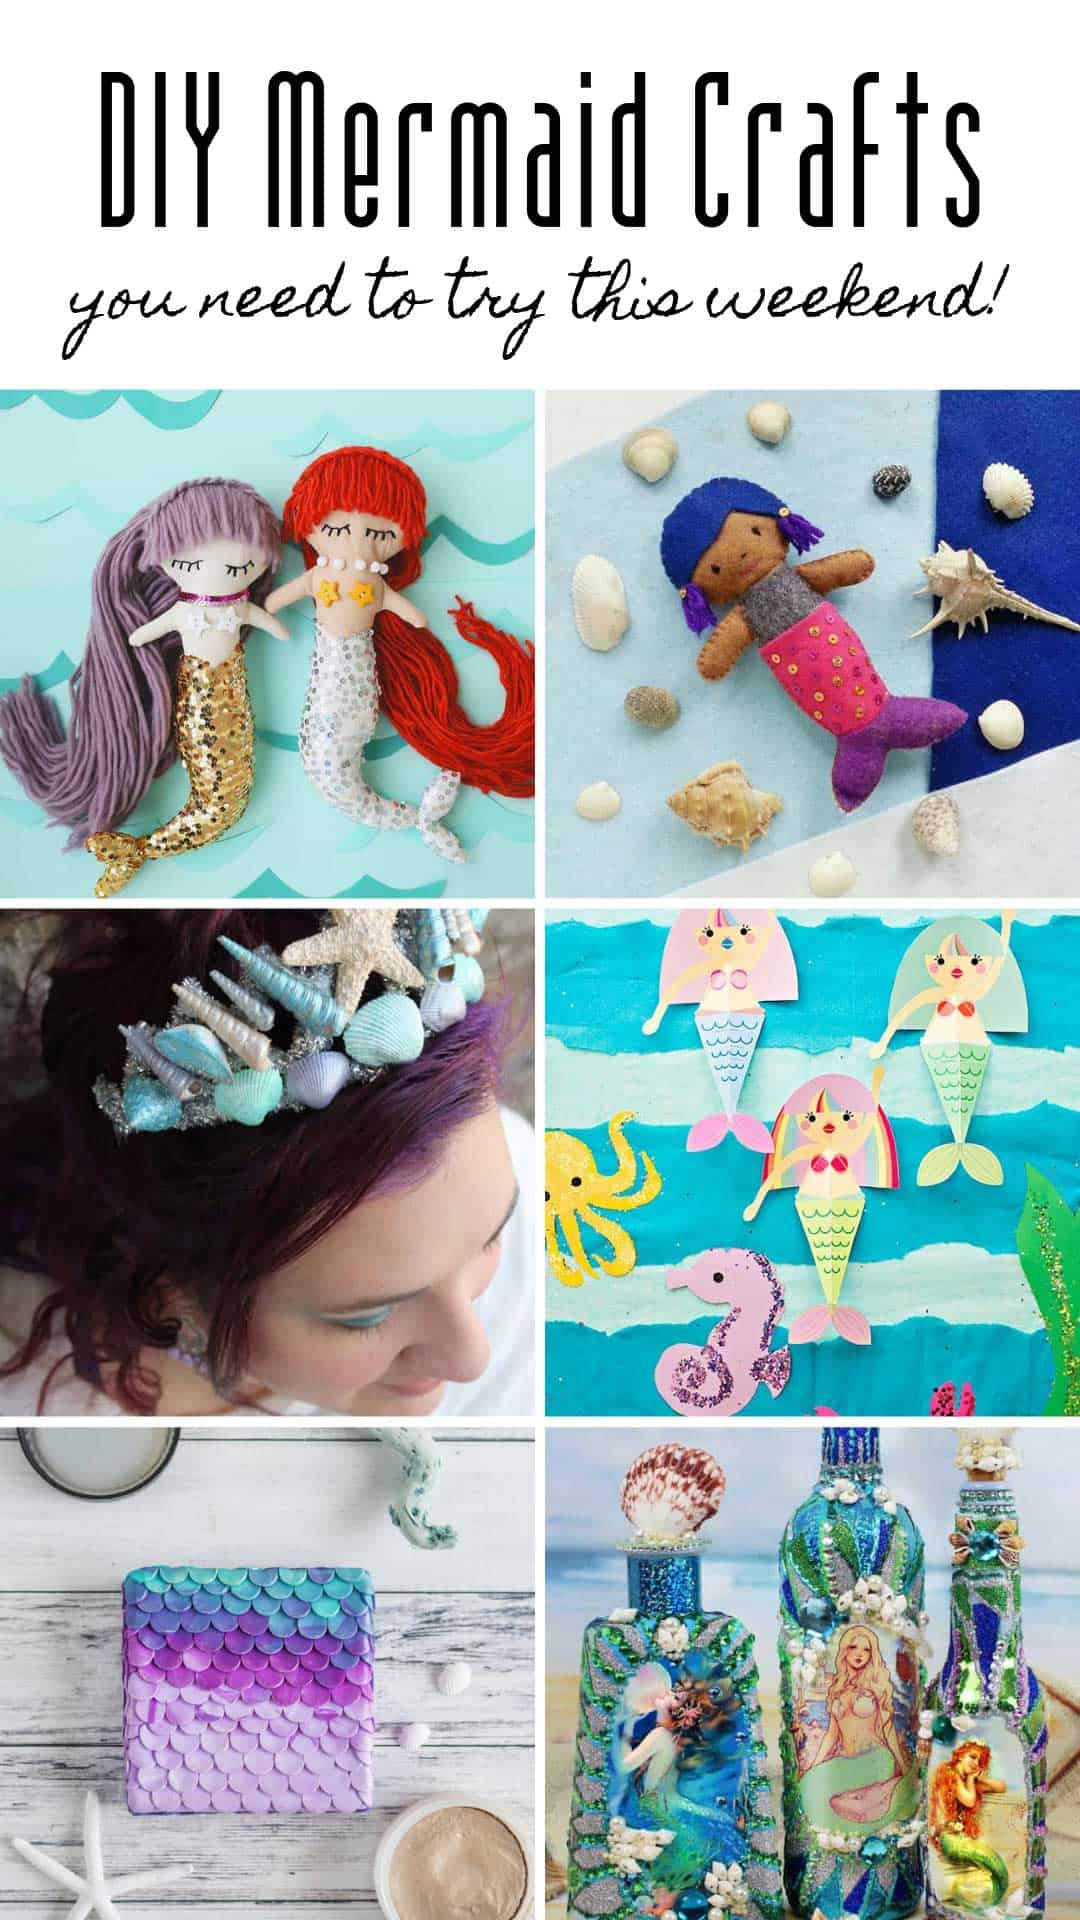 Loving these DIY mermaid crafts that are perfect for all ages from kids to grownups!